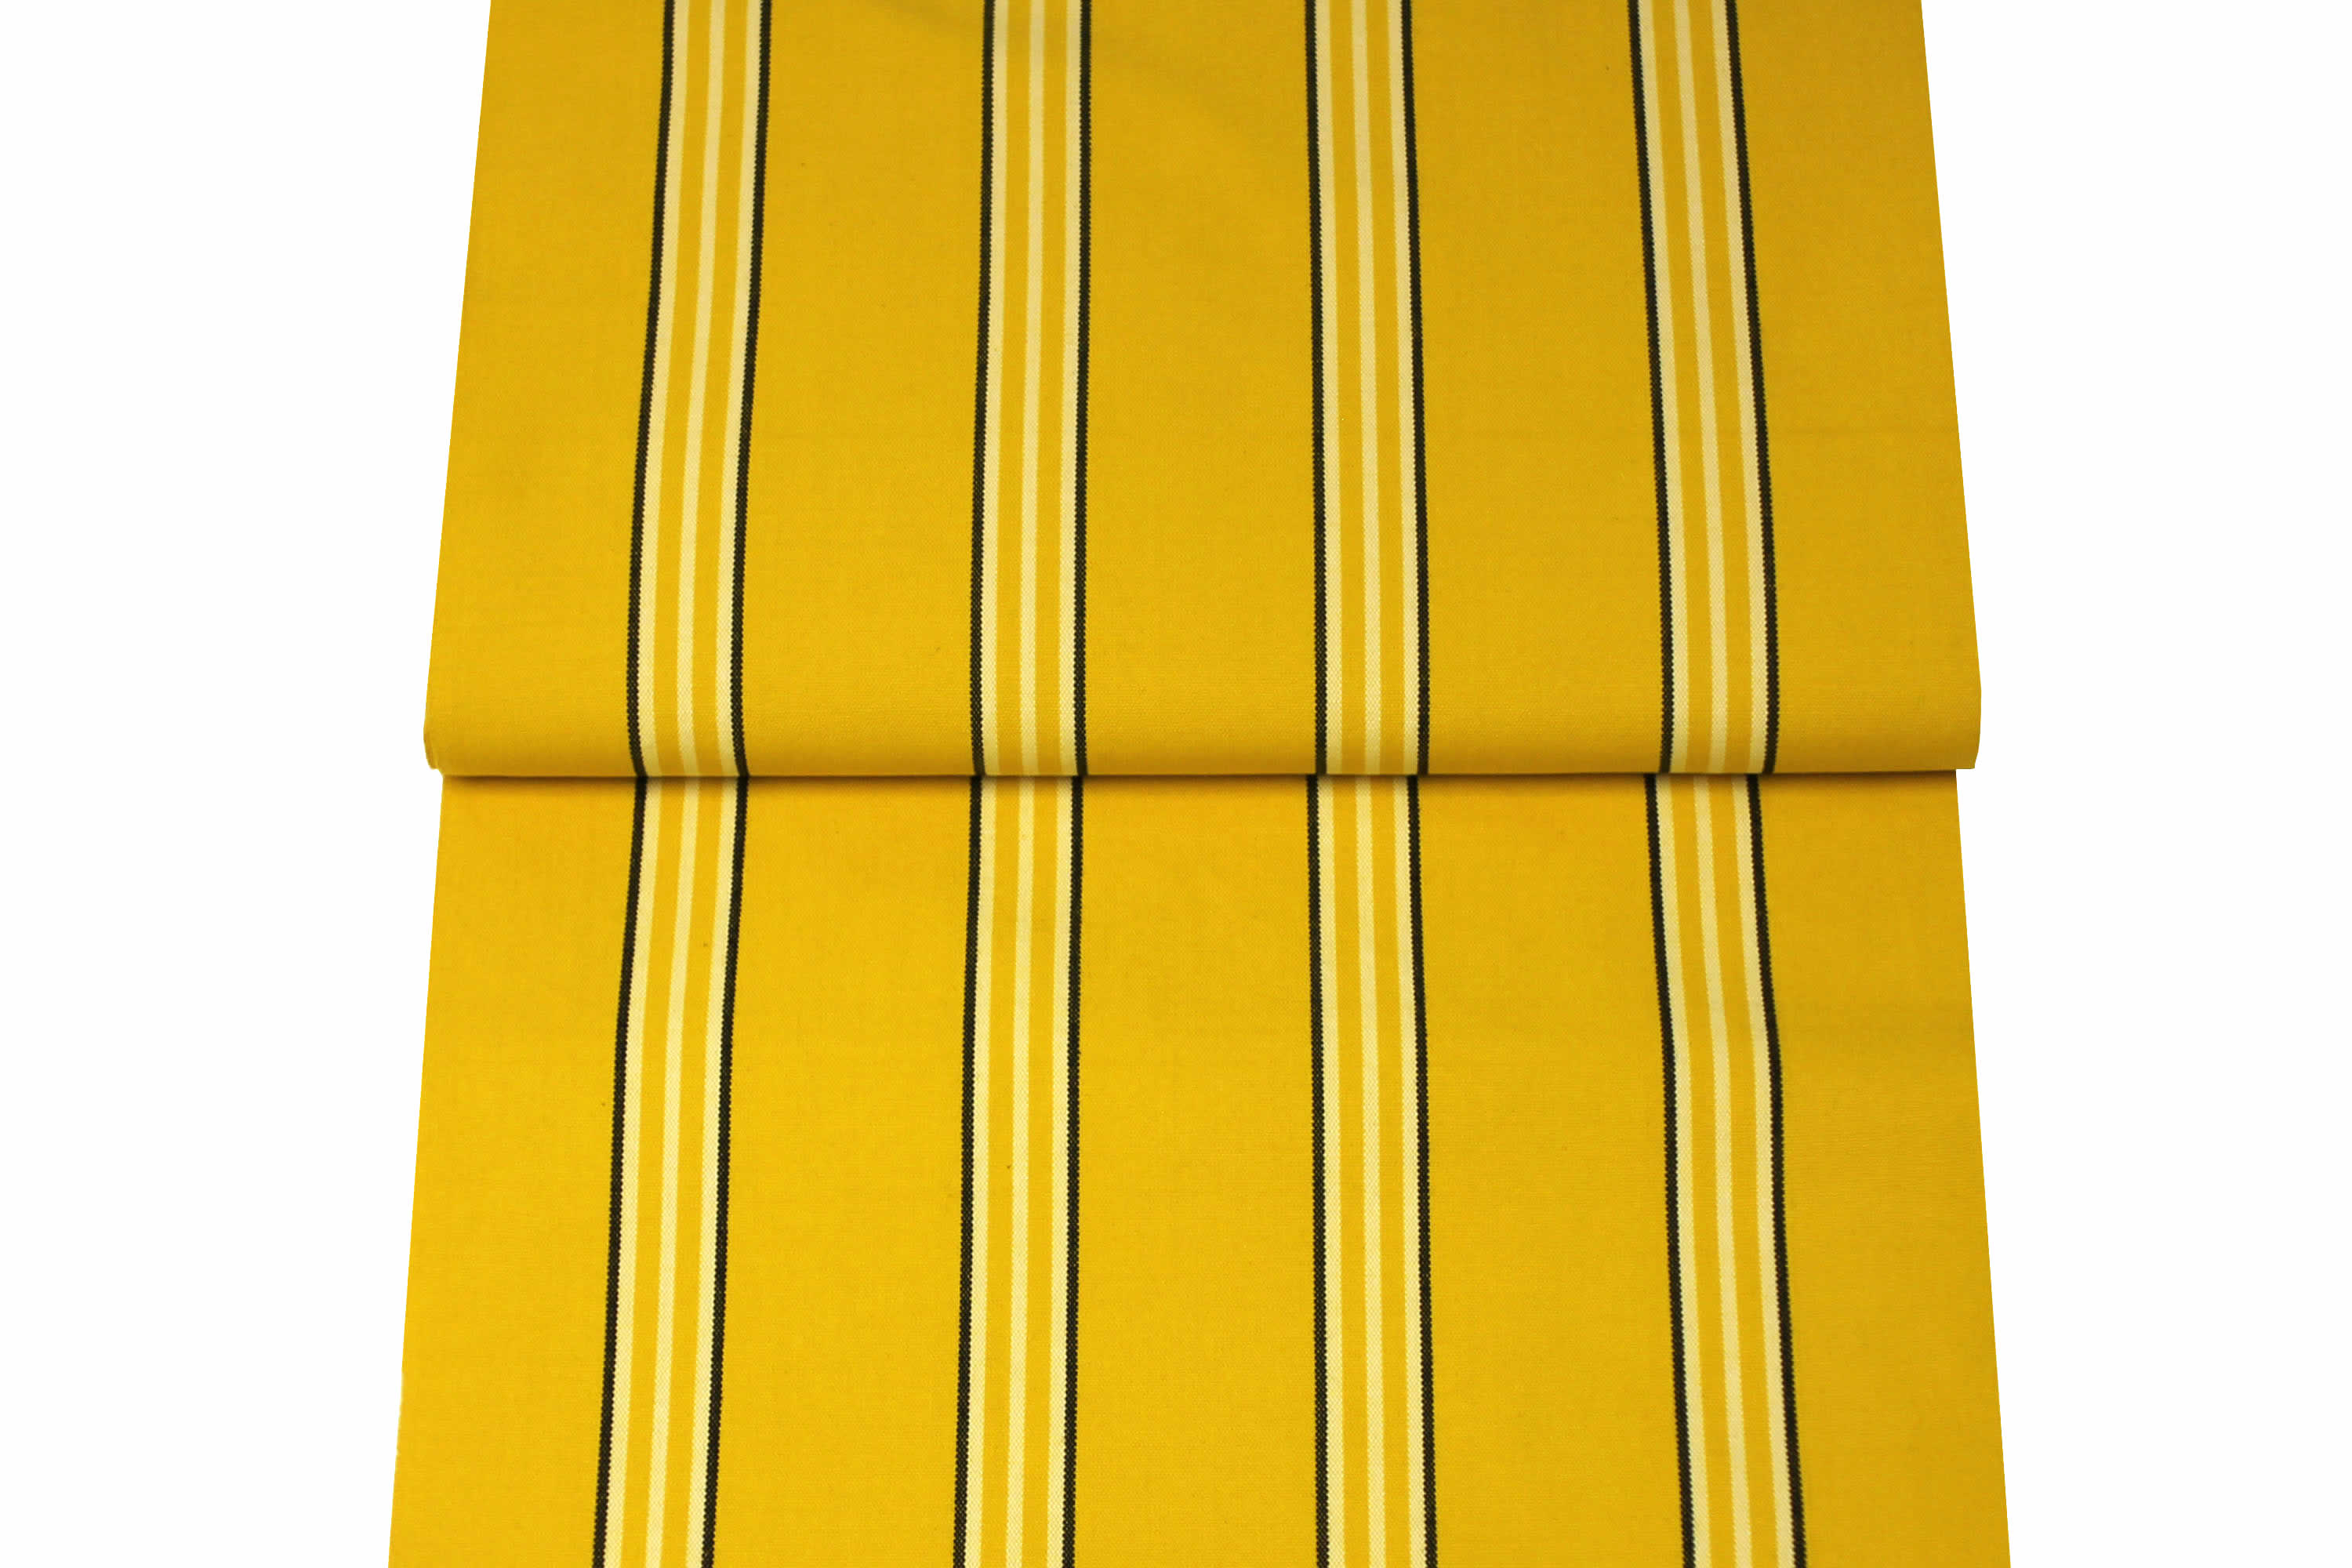 Yellow Striped Deckchair Canvas Fabric